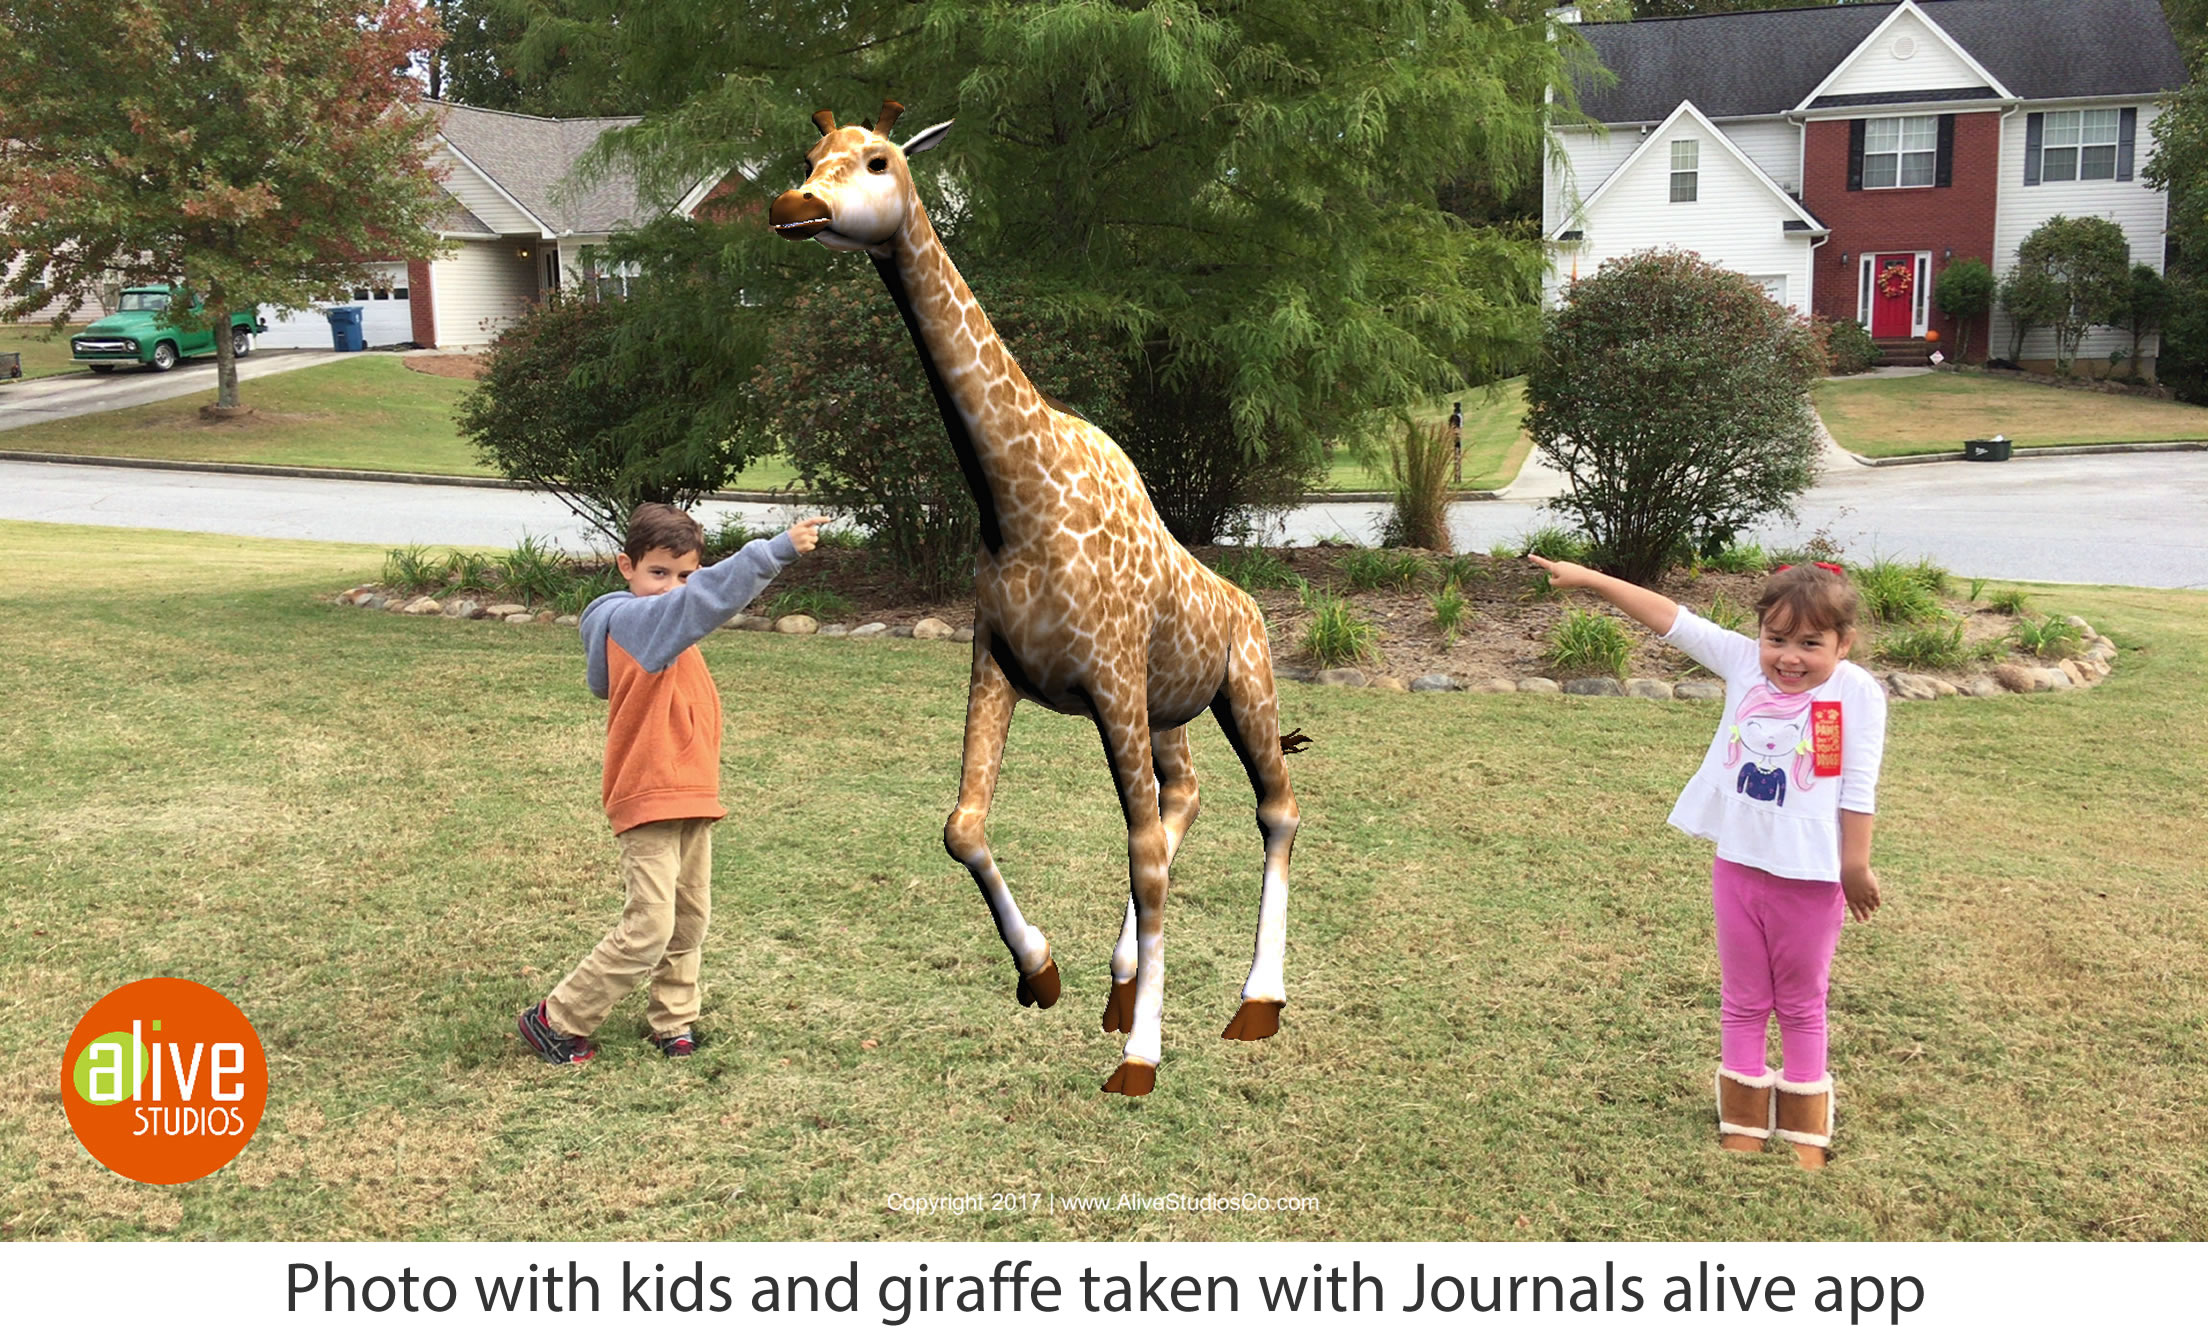 augmented reality mobile app for learning abc's